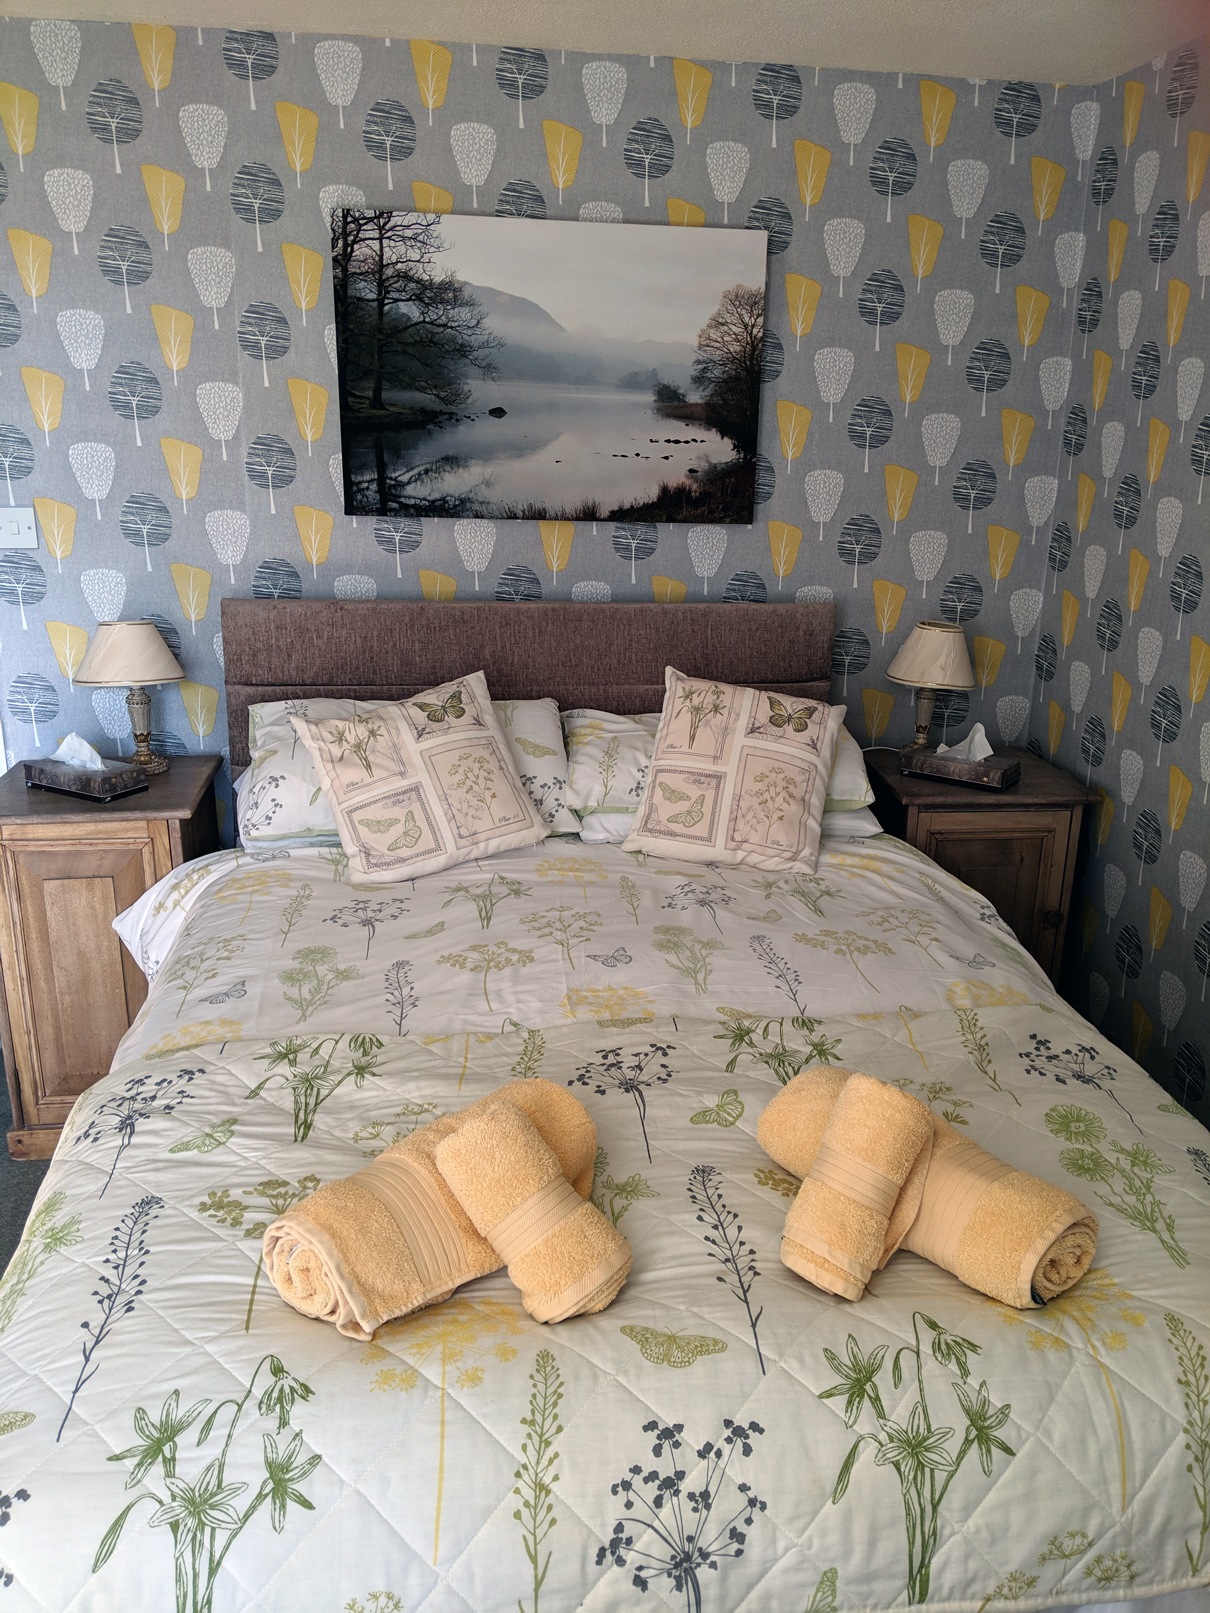 Self Catering Apartment near Hawkshead English Lake District